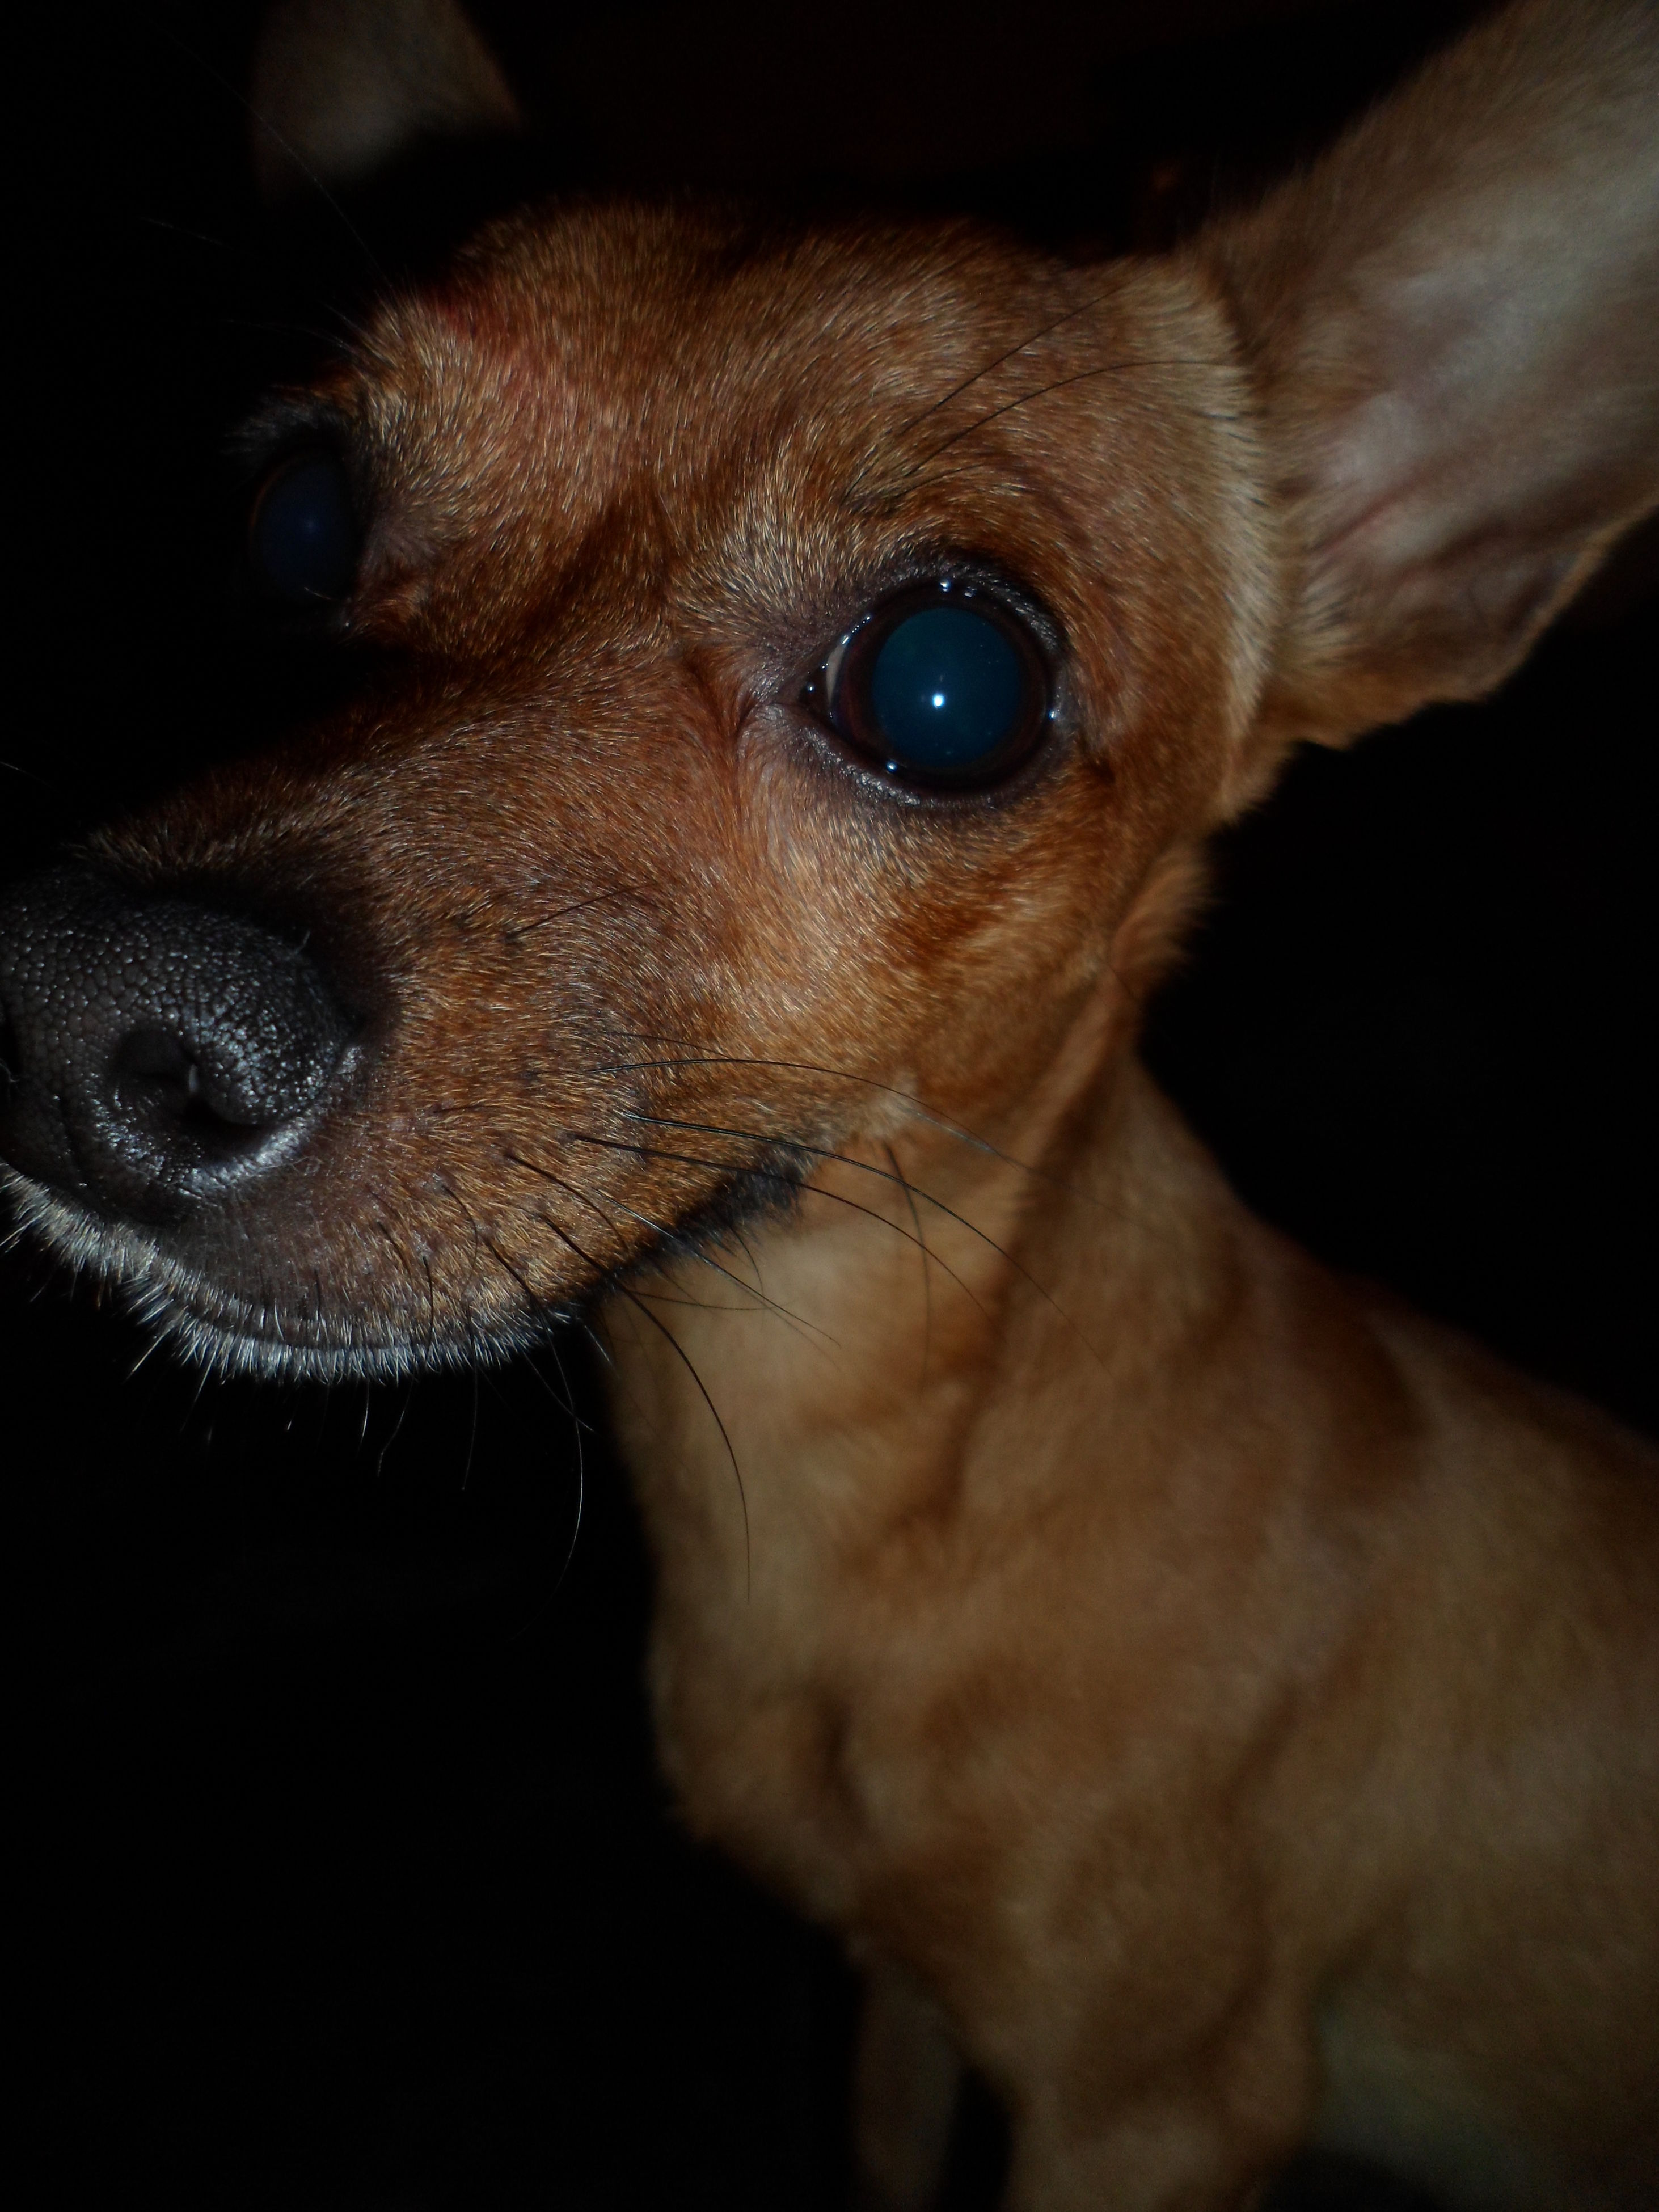 dog, pets, one animal, domestic animals, animal themes, mammal, close-up, animal head, no people, portrait, black background, indoors, day